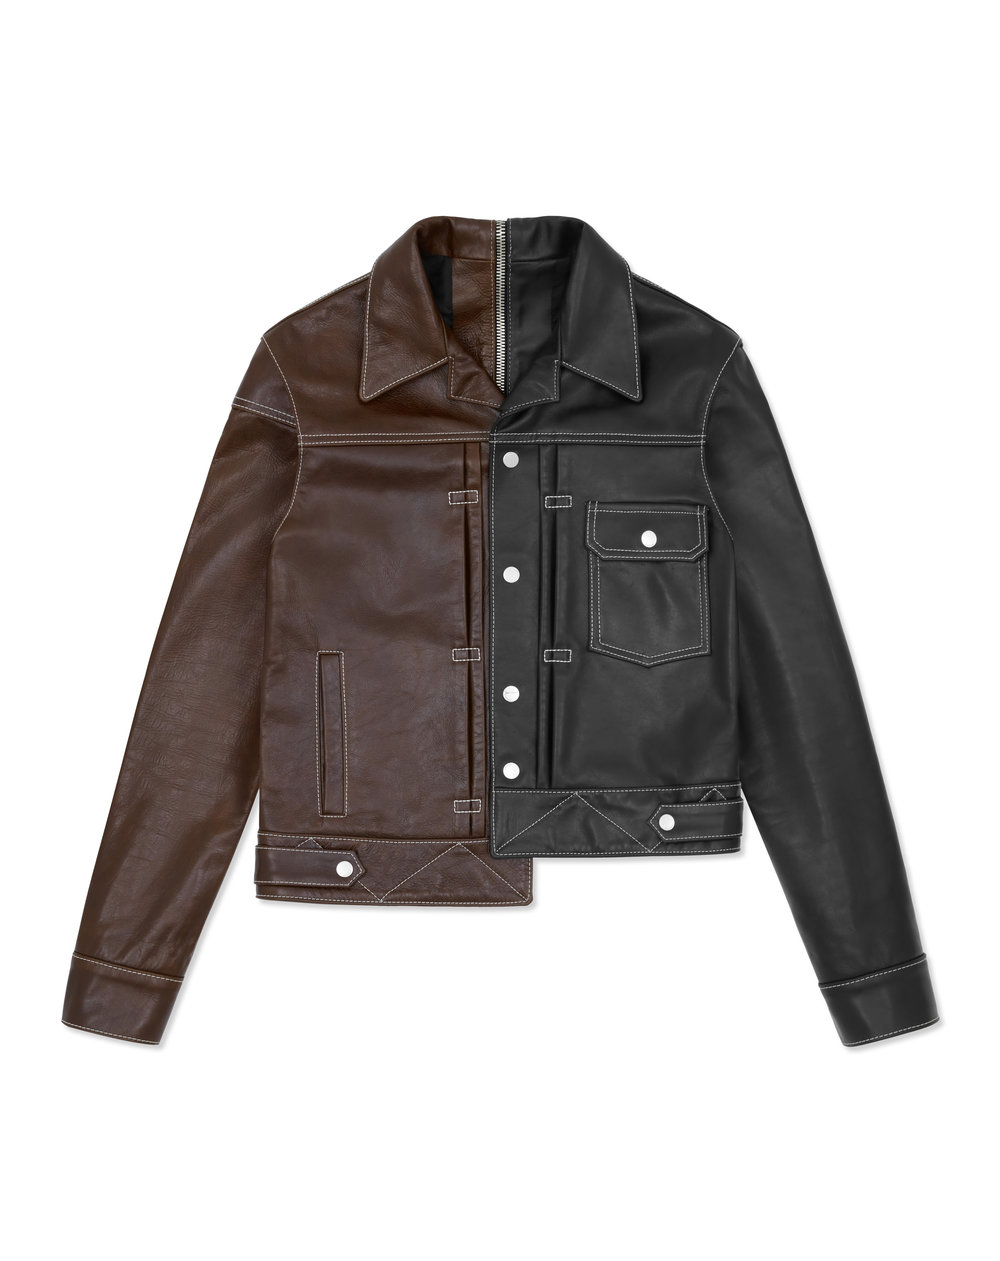 C2-O_04_Split Leather Jacket_01.jpg